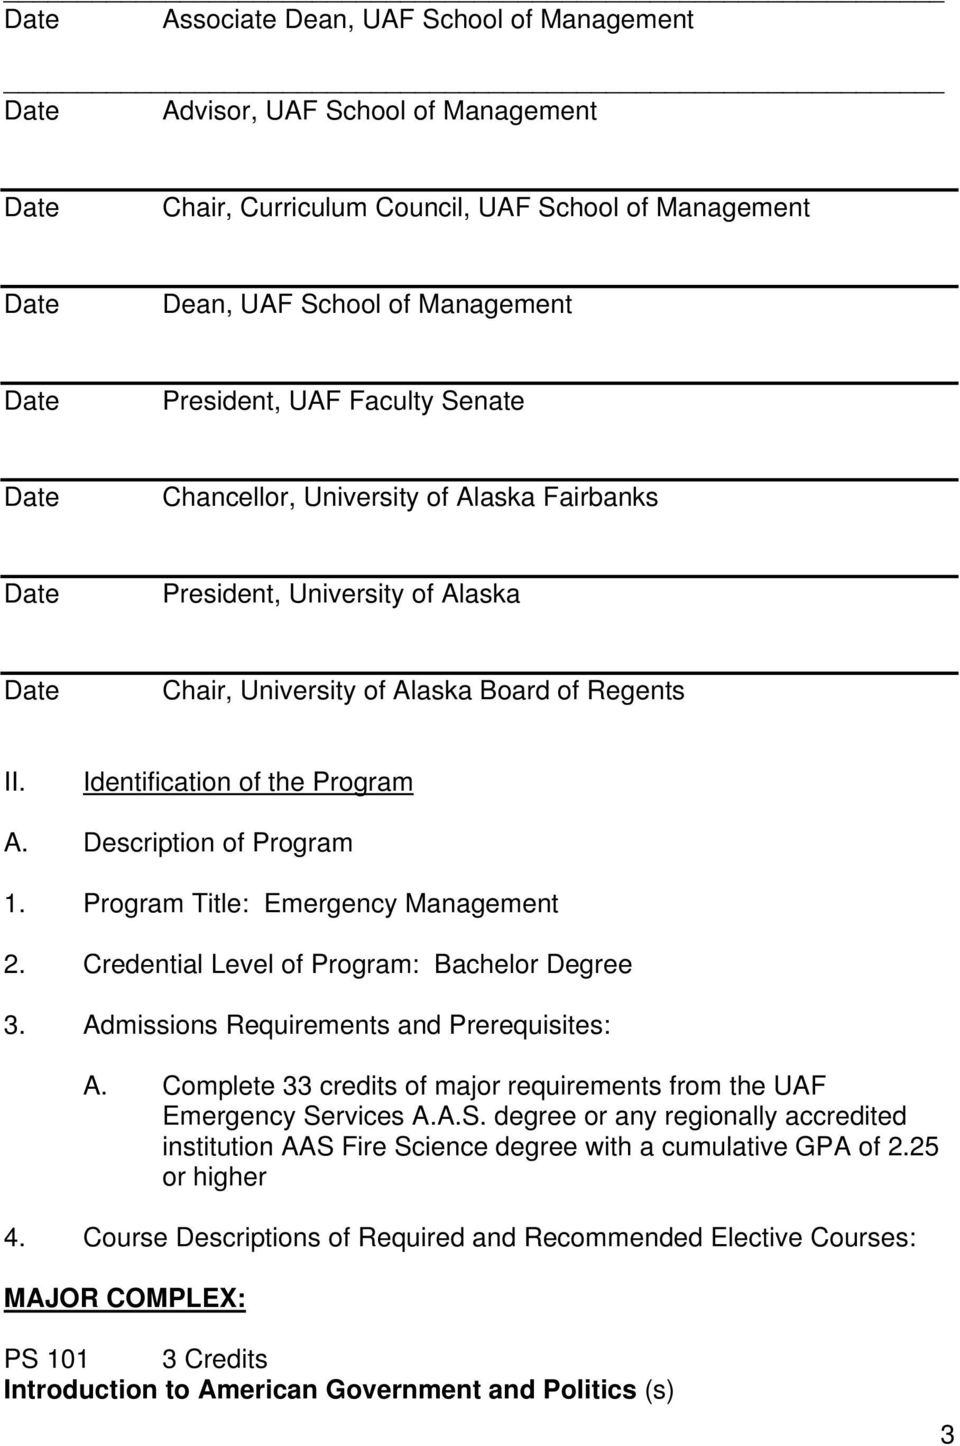 Description of Program 1. Program Title: Emergency Management 2. Credential Level of Program: Bachelor Degree 3. Admissions Requirements and Prerequisites: A.